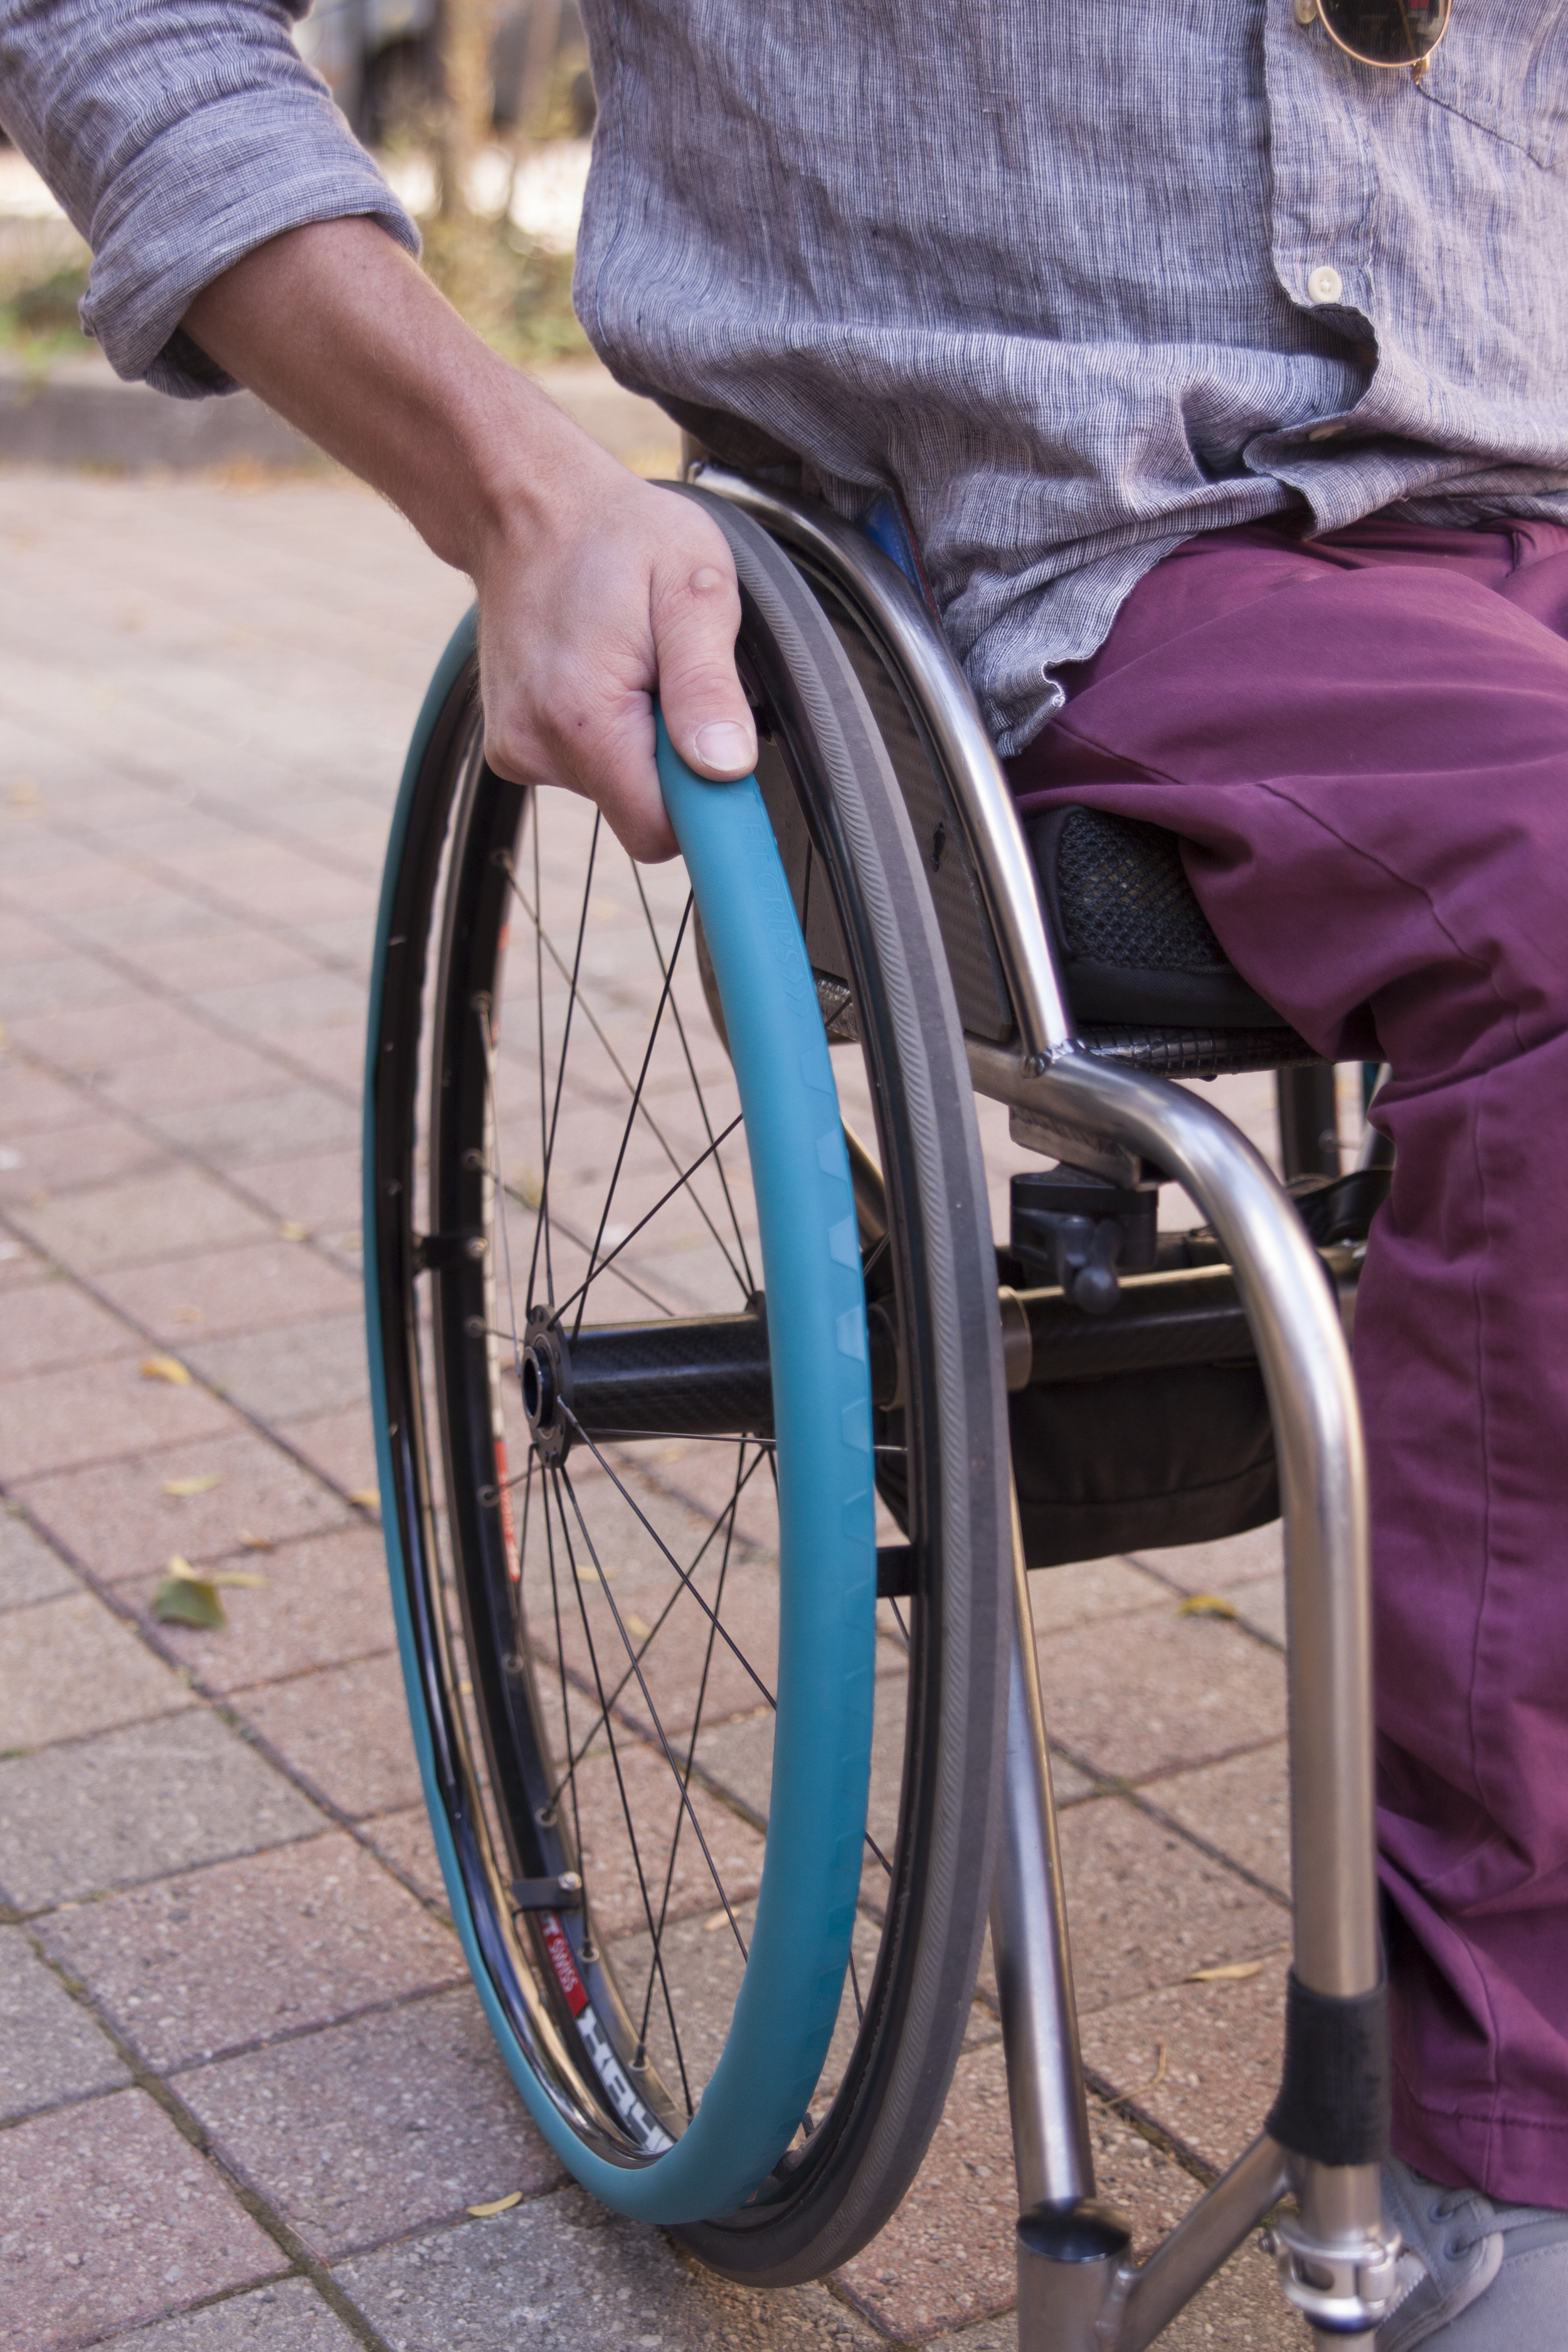 wheelchair grips rocking reclining chair fit intelliwheels designed to your hand and budget are perfect for anyone looking push their with more comfort ease